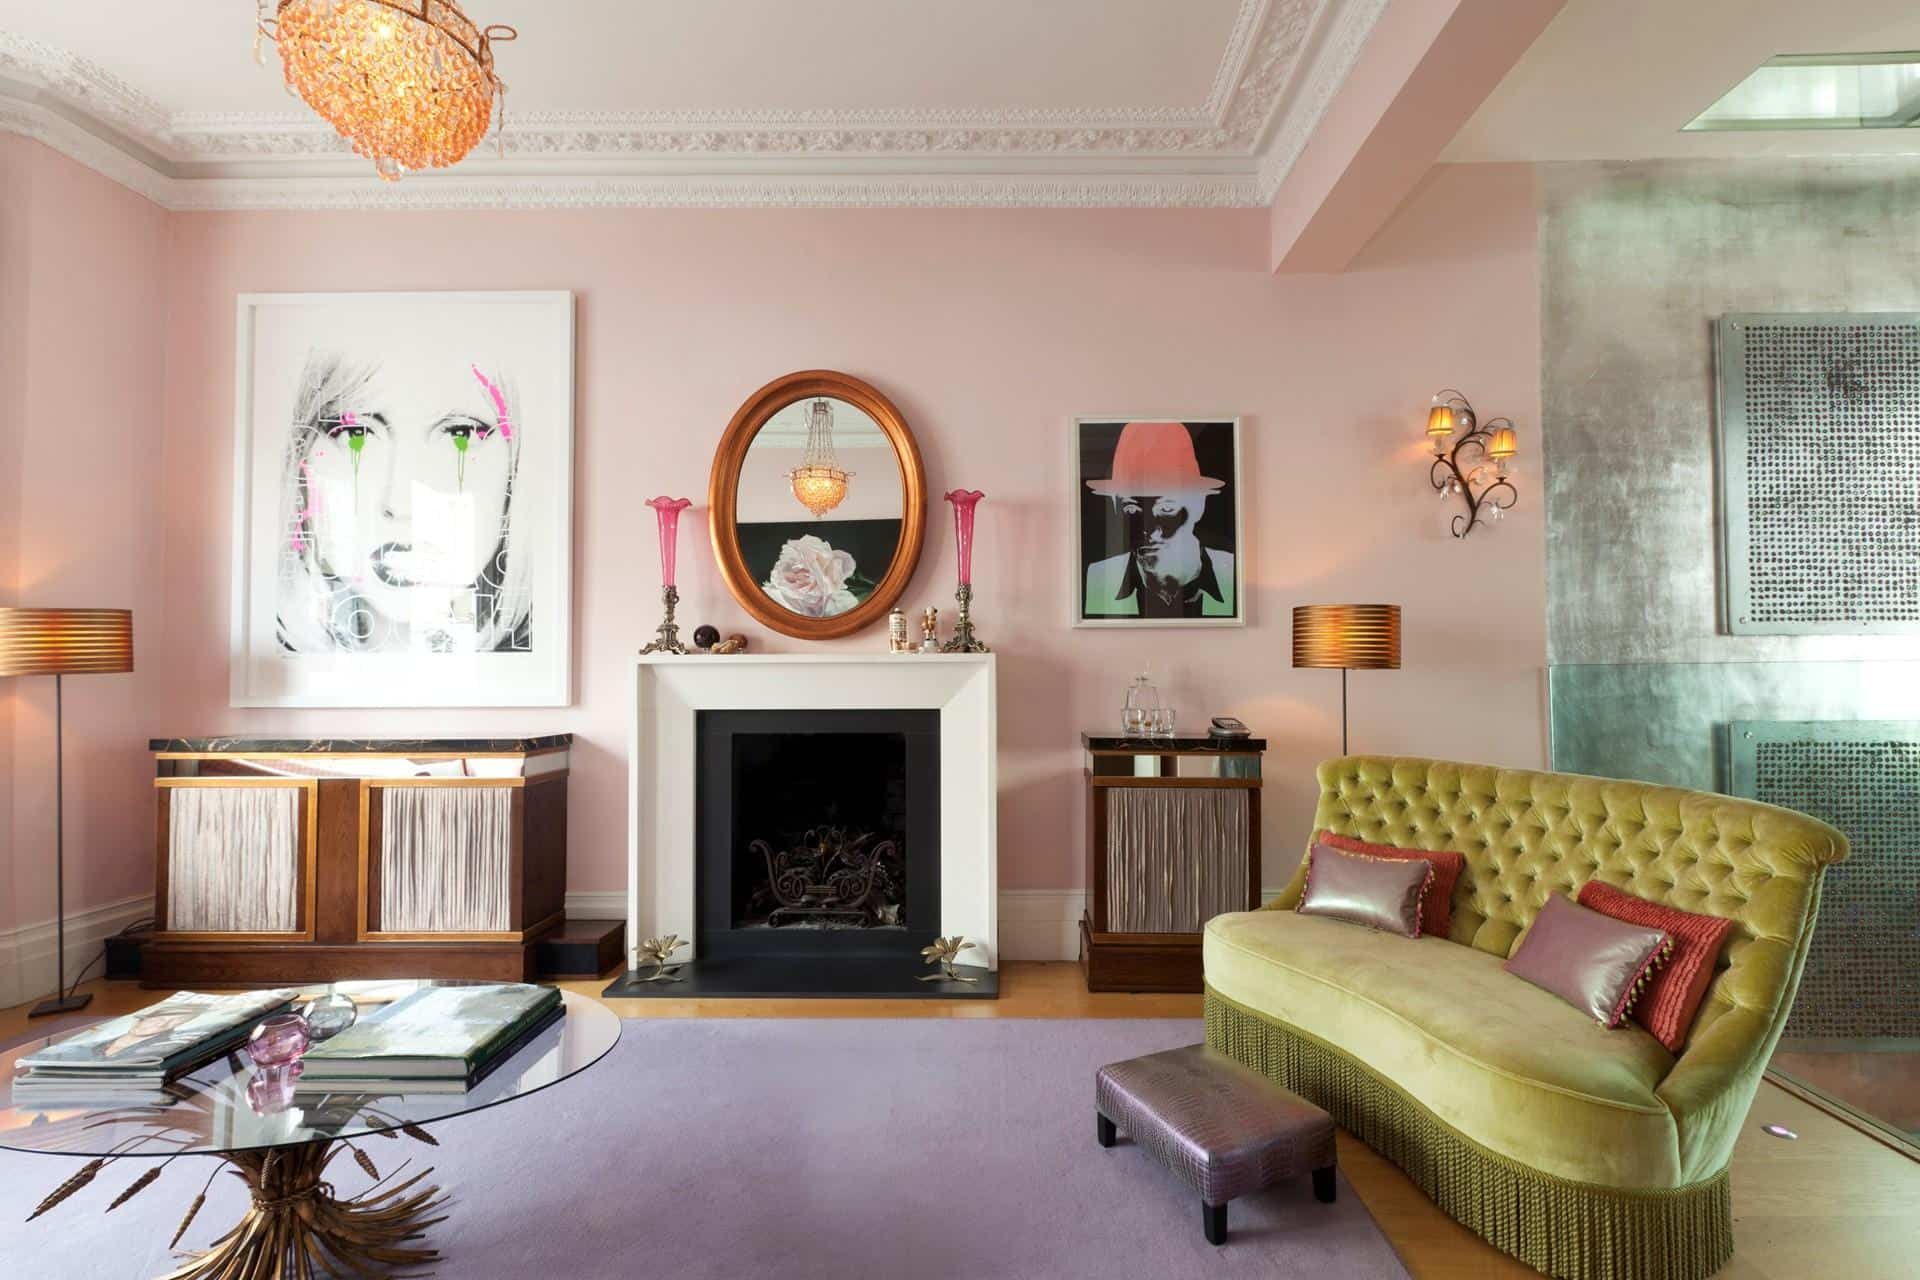 Pop art touch for colorful boudoir decoration with pink walls